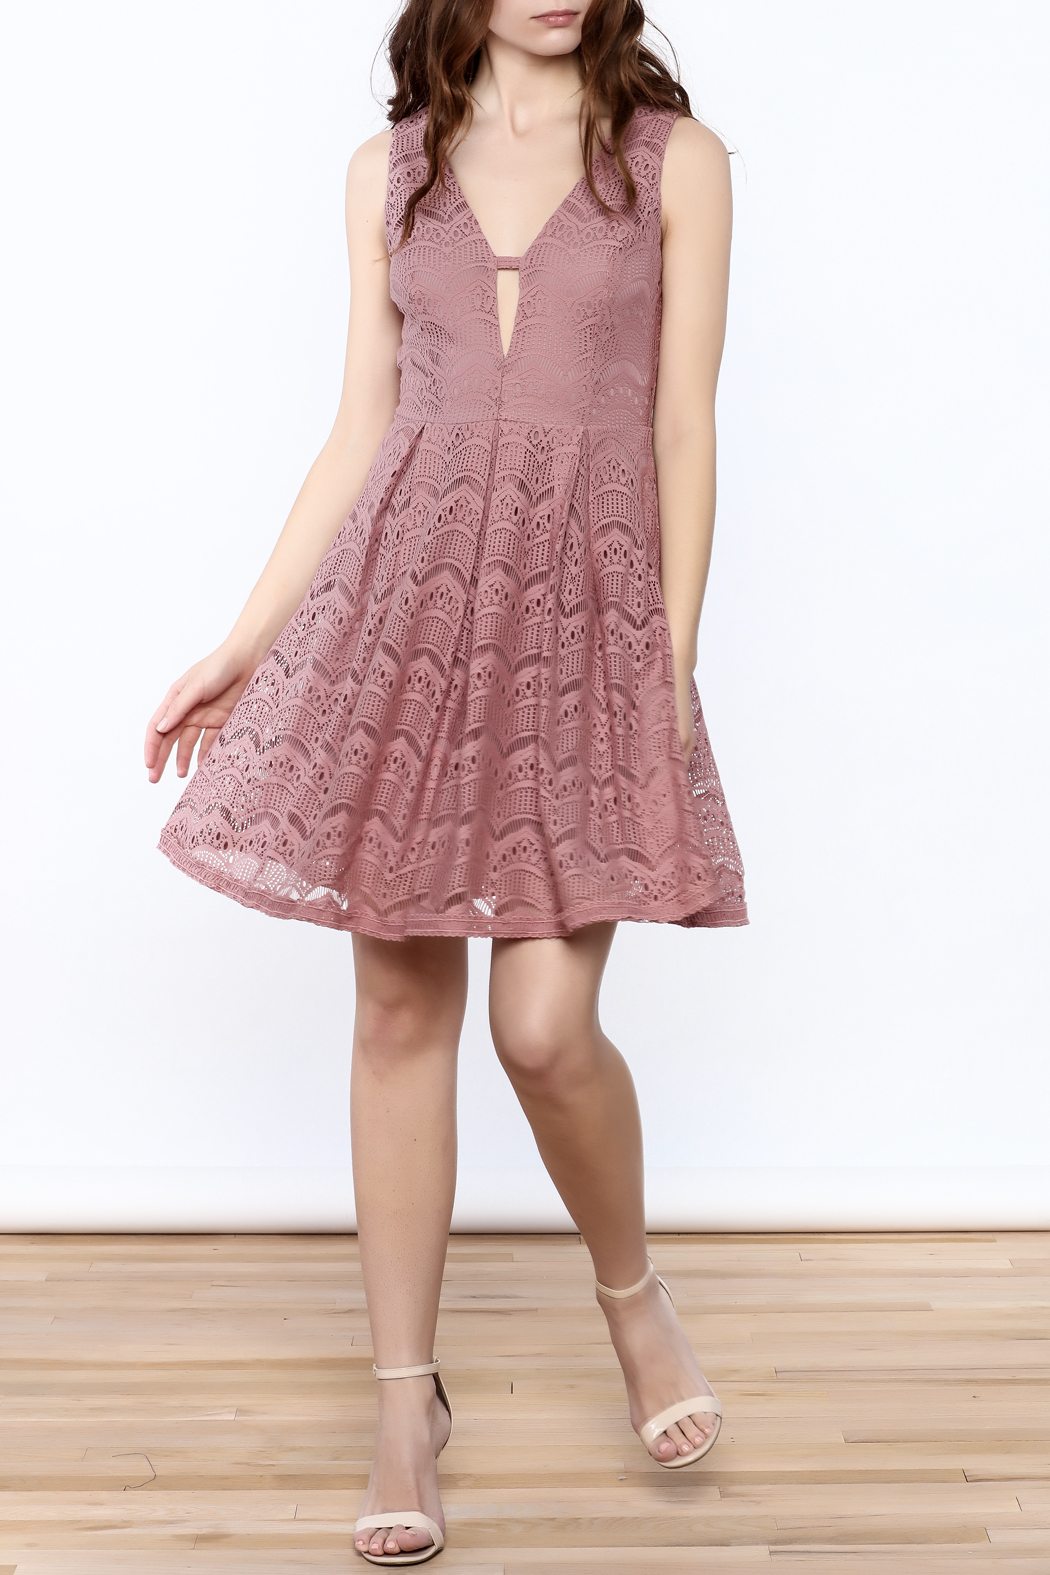 She + Sky Old Rose Lace Dress - Front Full Image